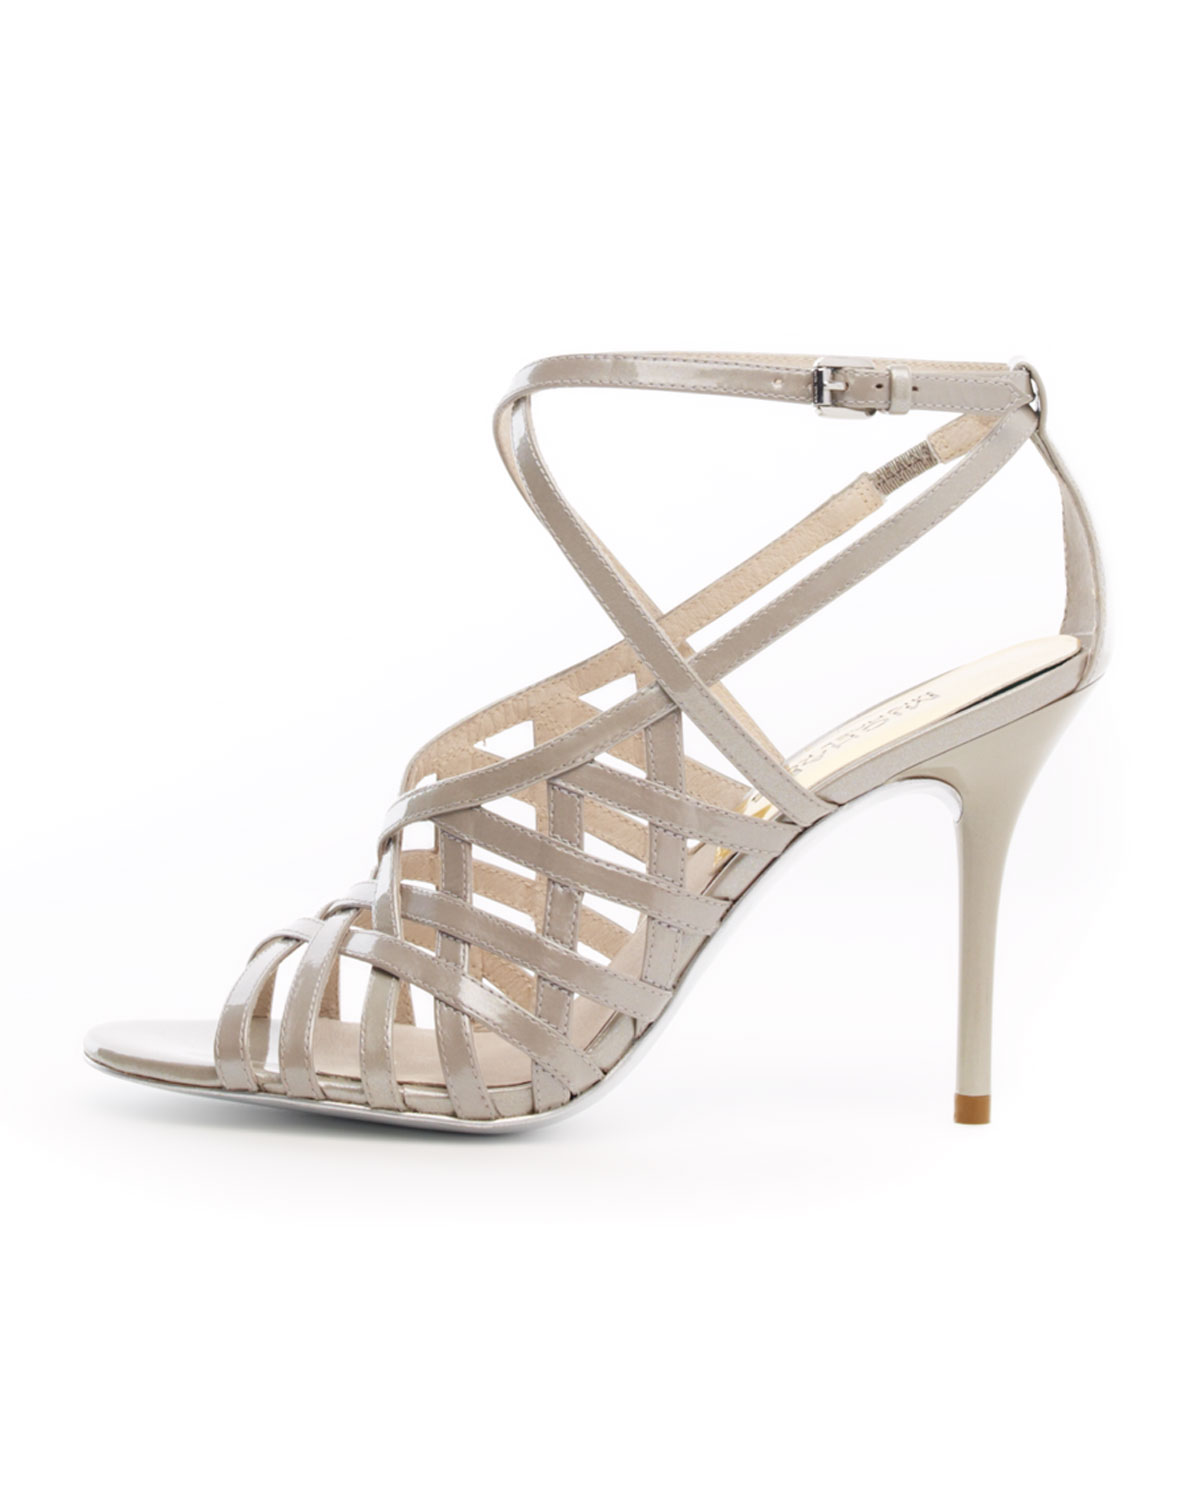 Michael Kors Jessie Patent Cage Sandal In Gray Silver Lyst